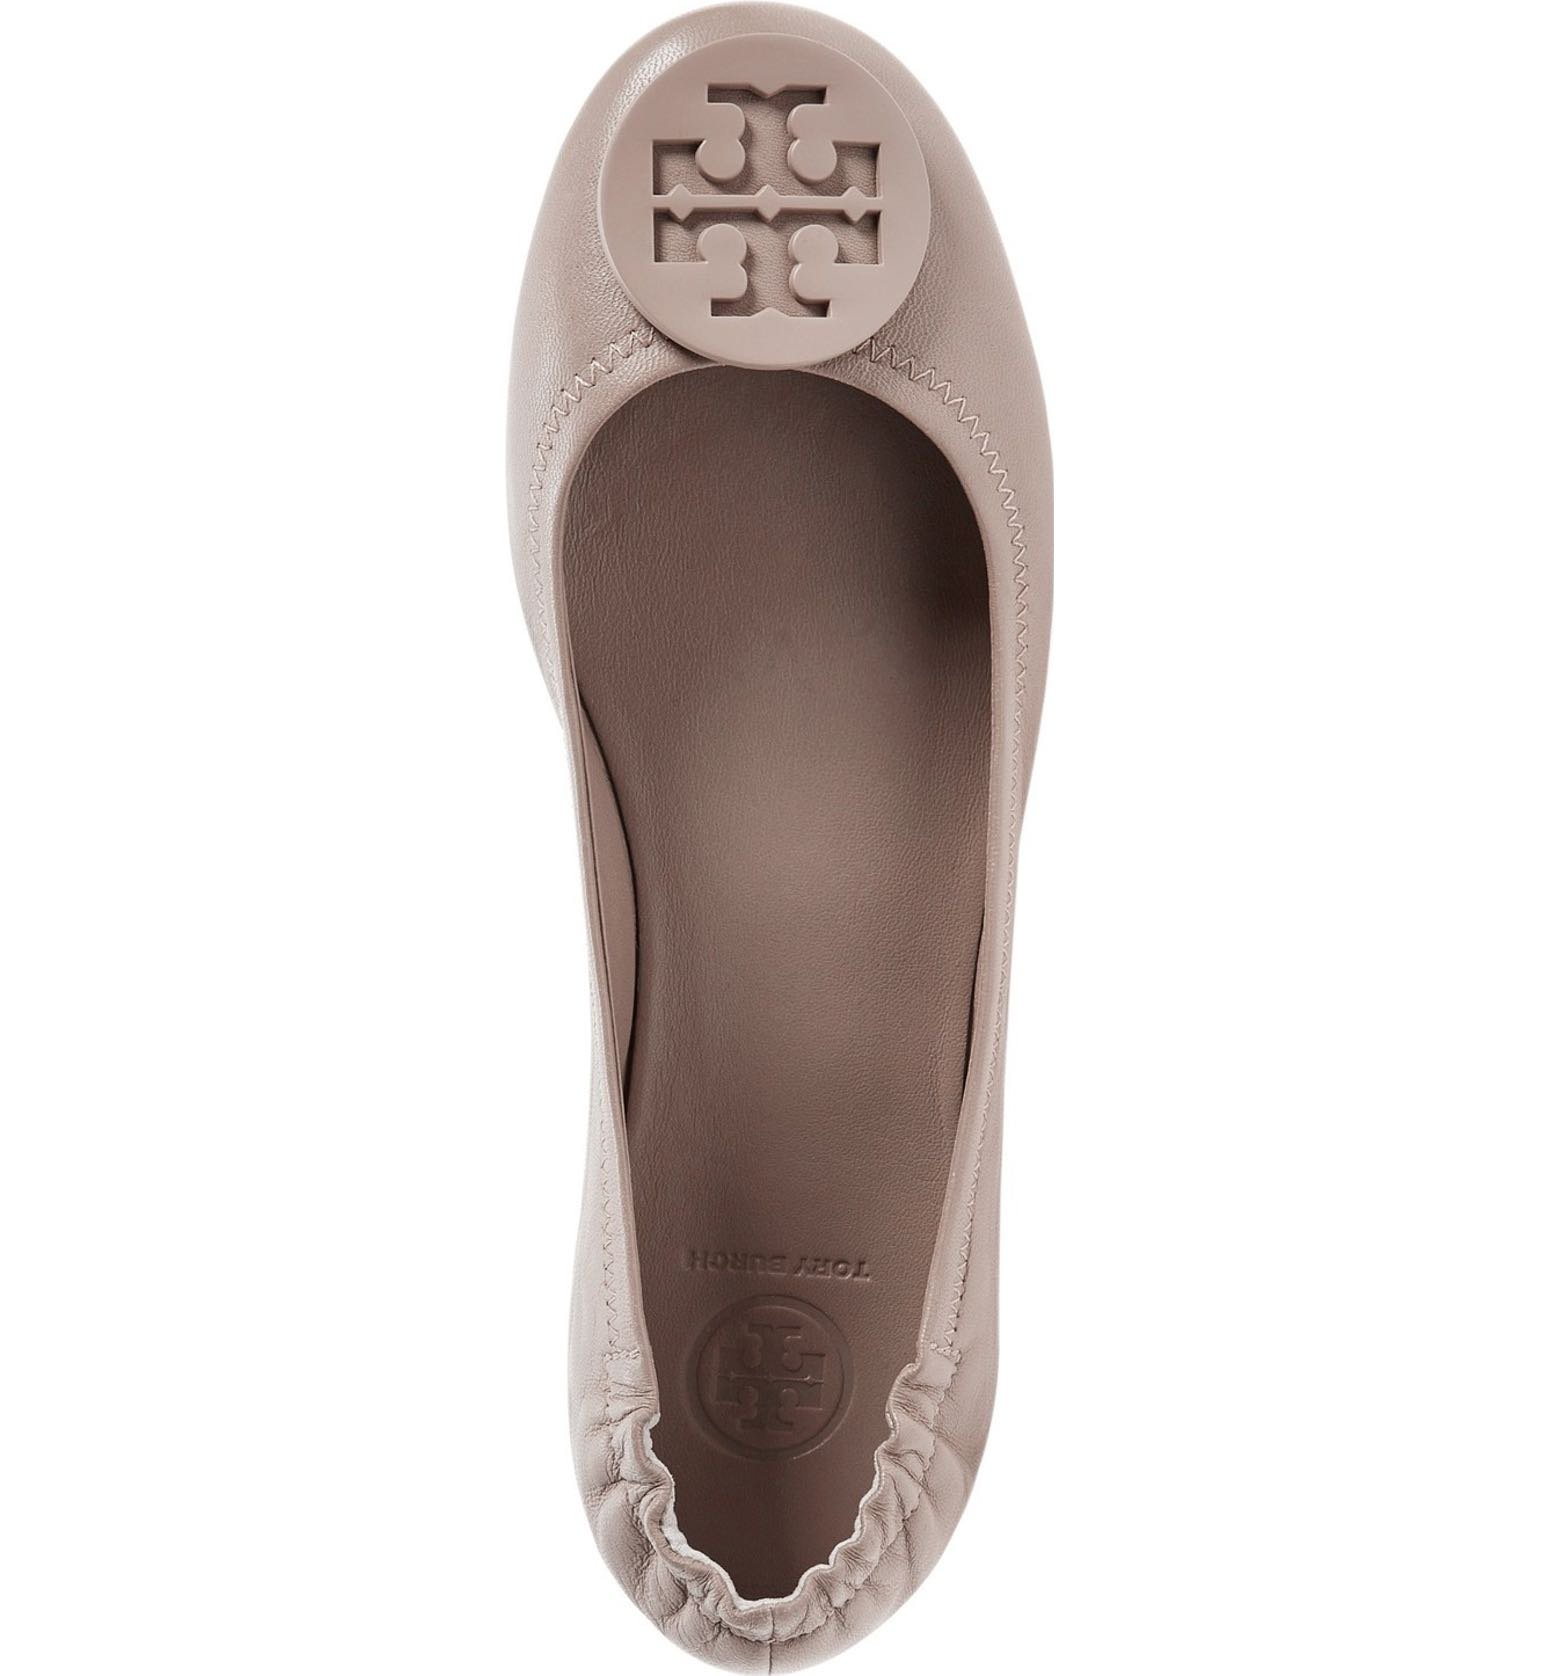 Tory Burch Minnie Travel Ballet Flat, French Gray (7) by Tory Burch